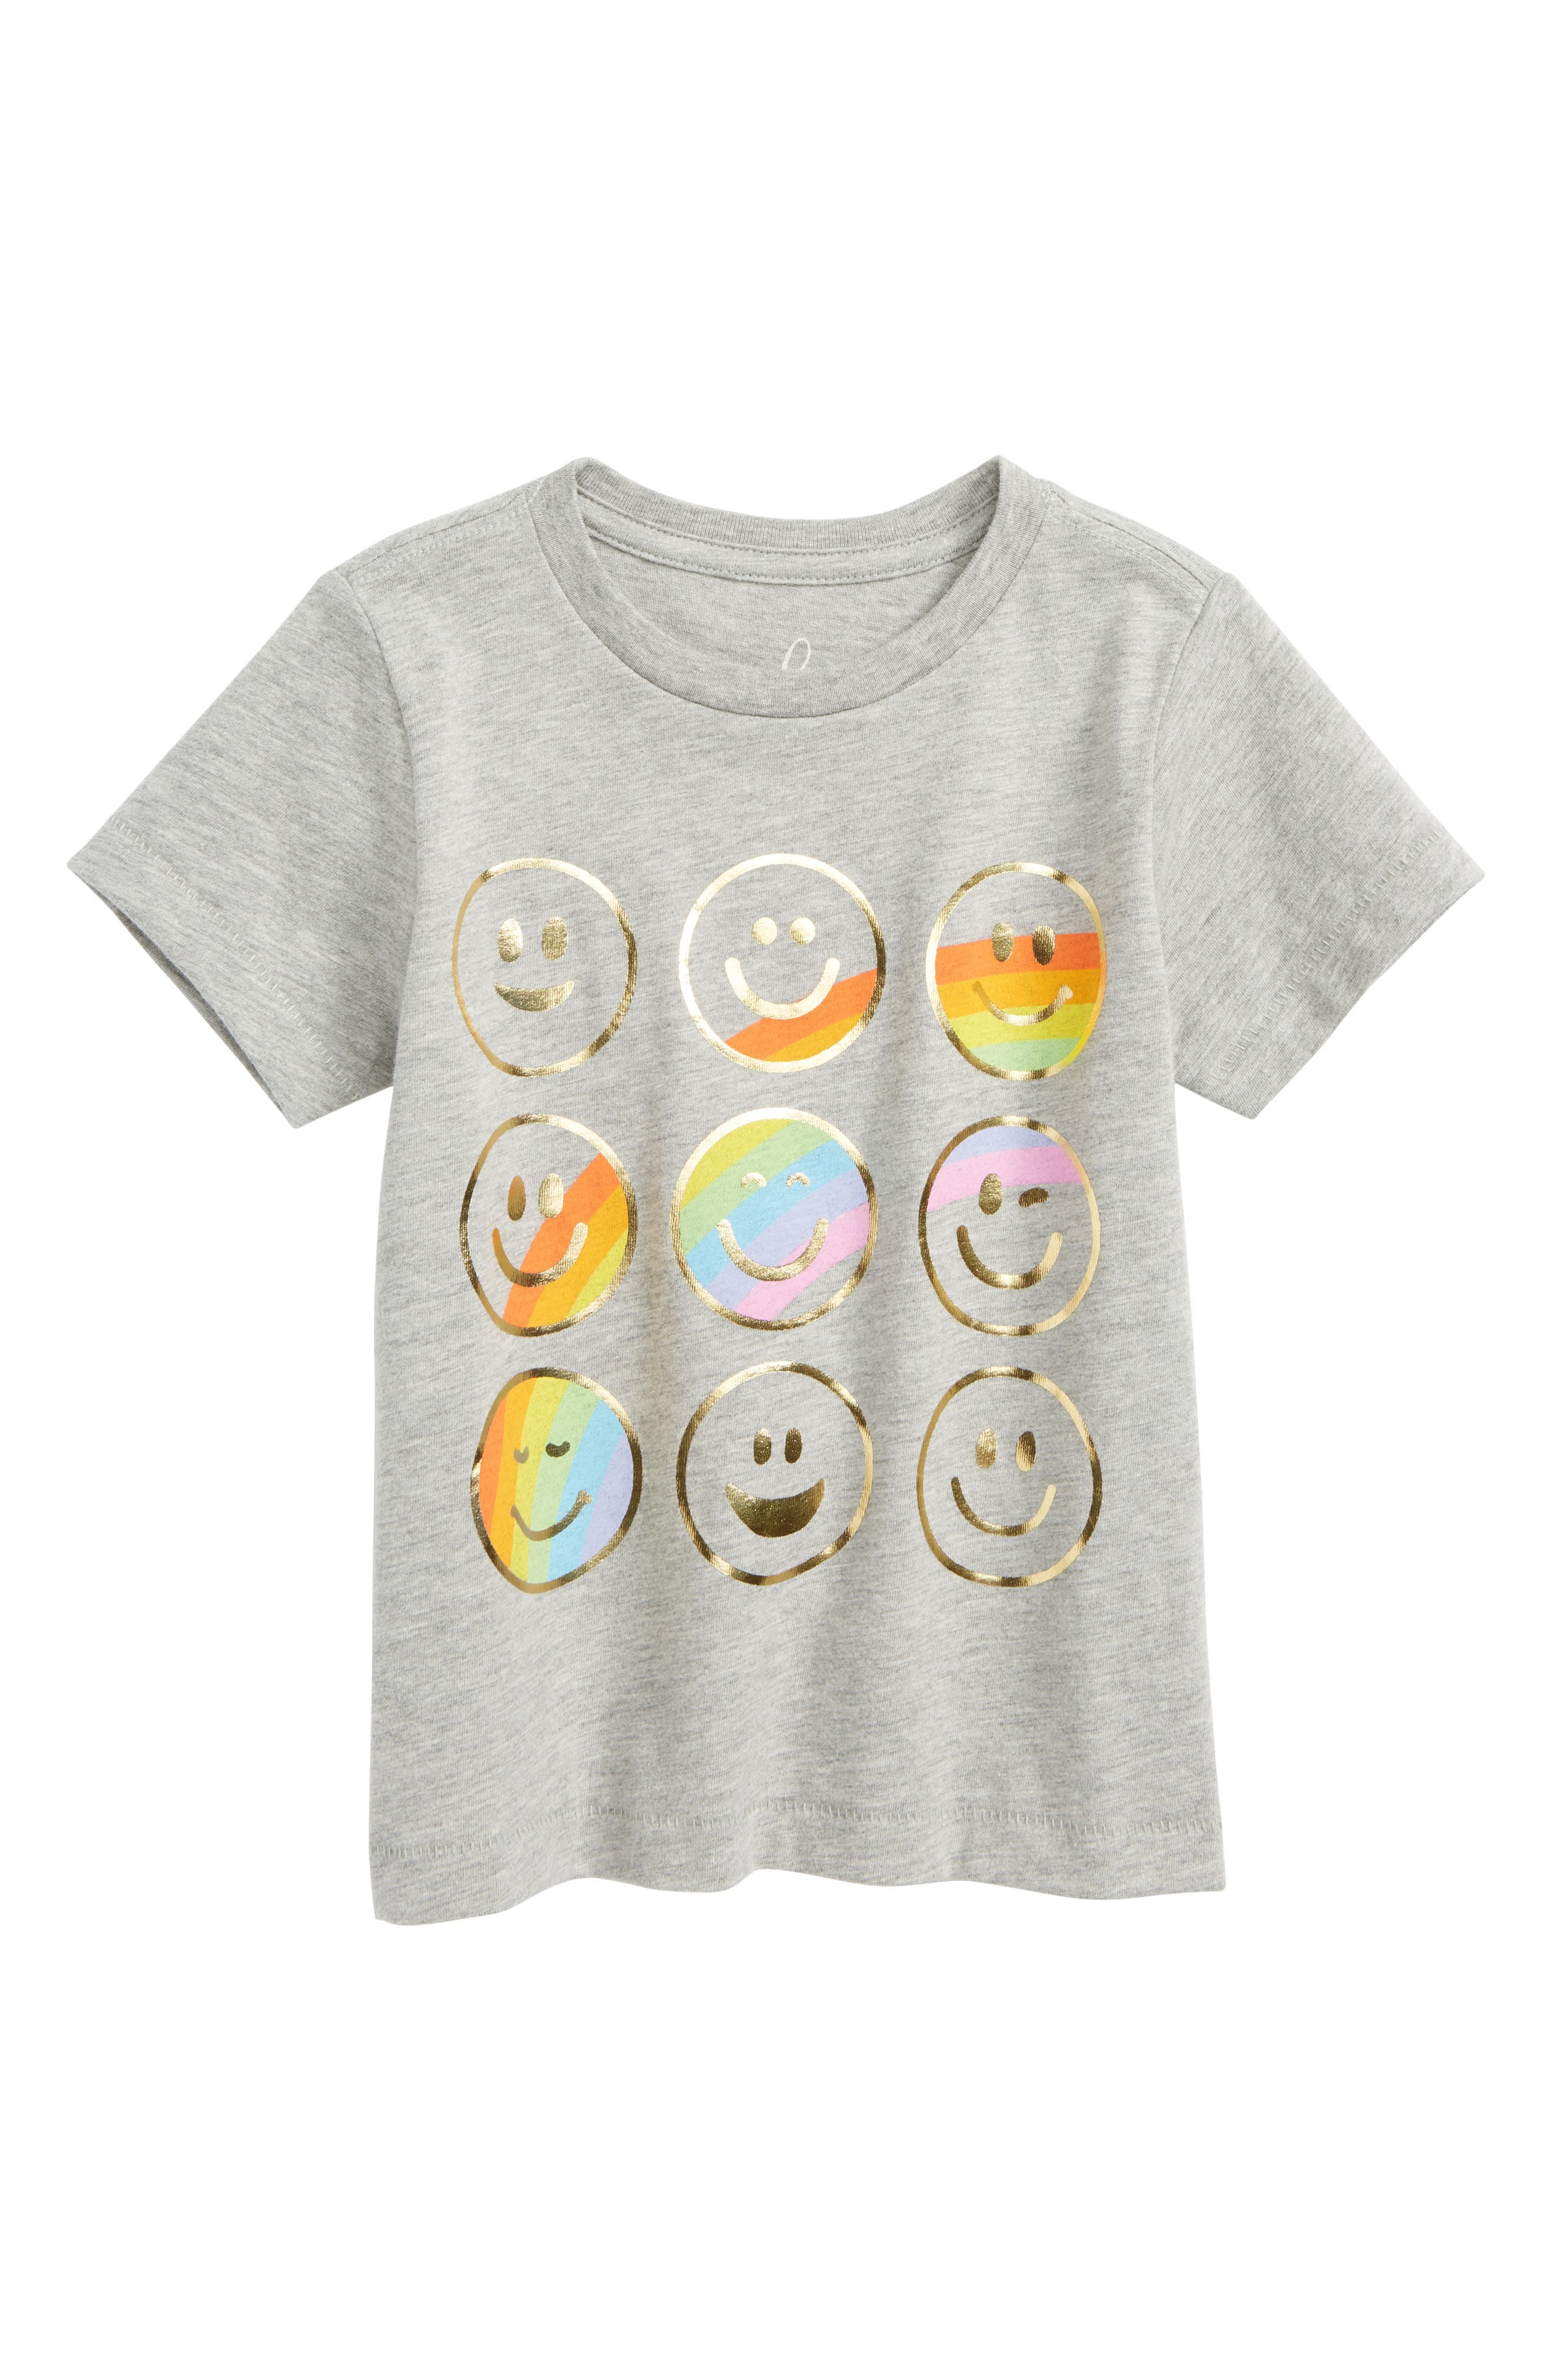 Emoticon Graphic Tee,                             Main thumbnail 1, color,                             Light Grey Heather